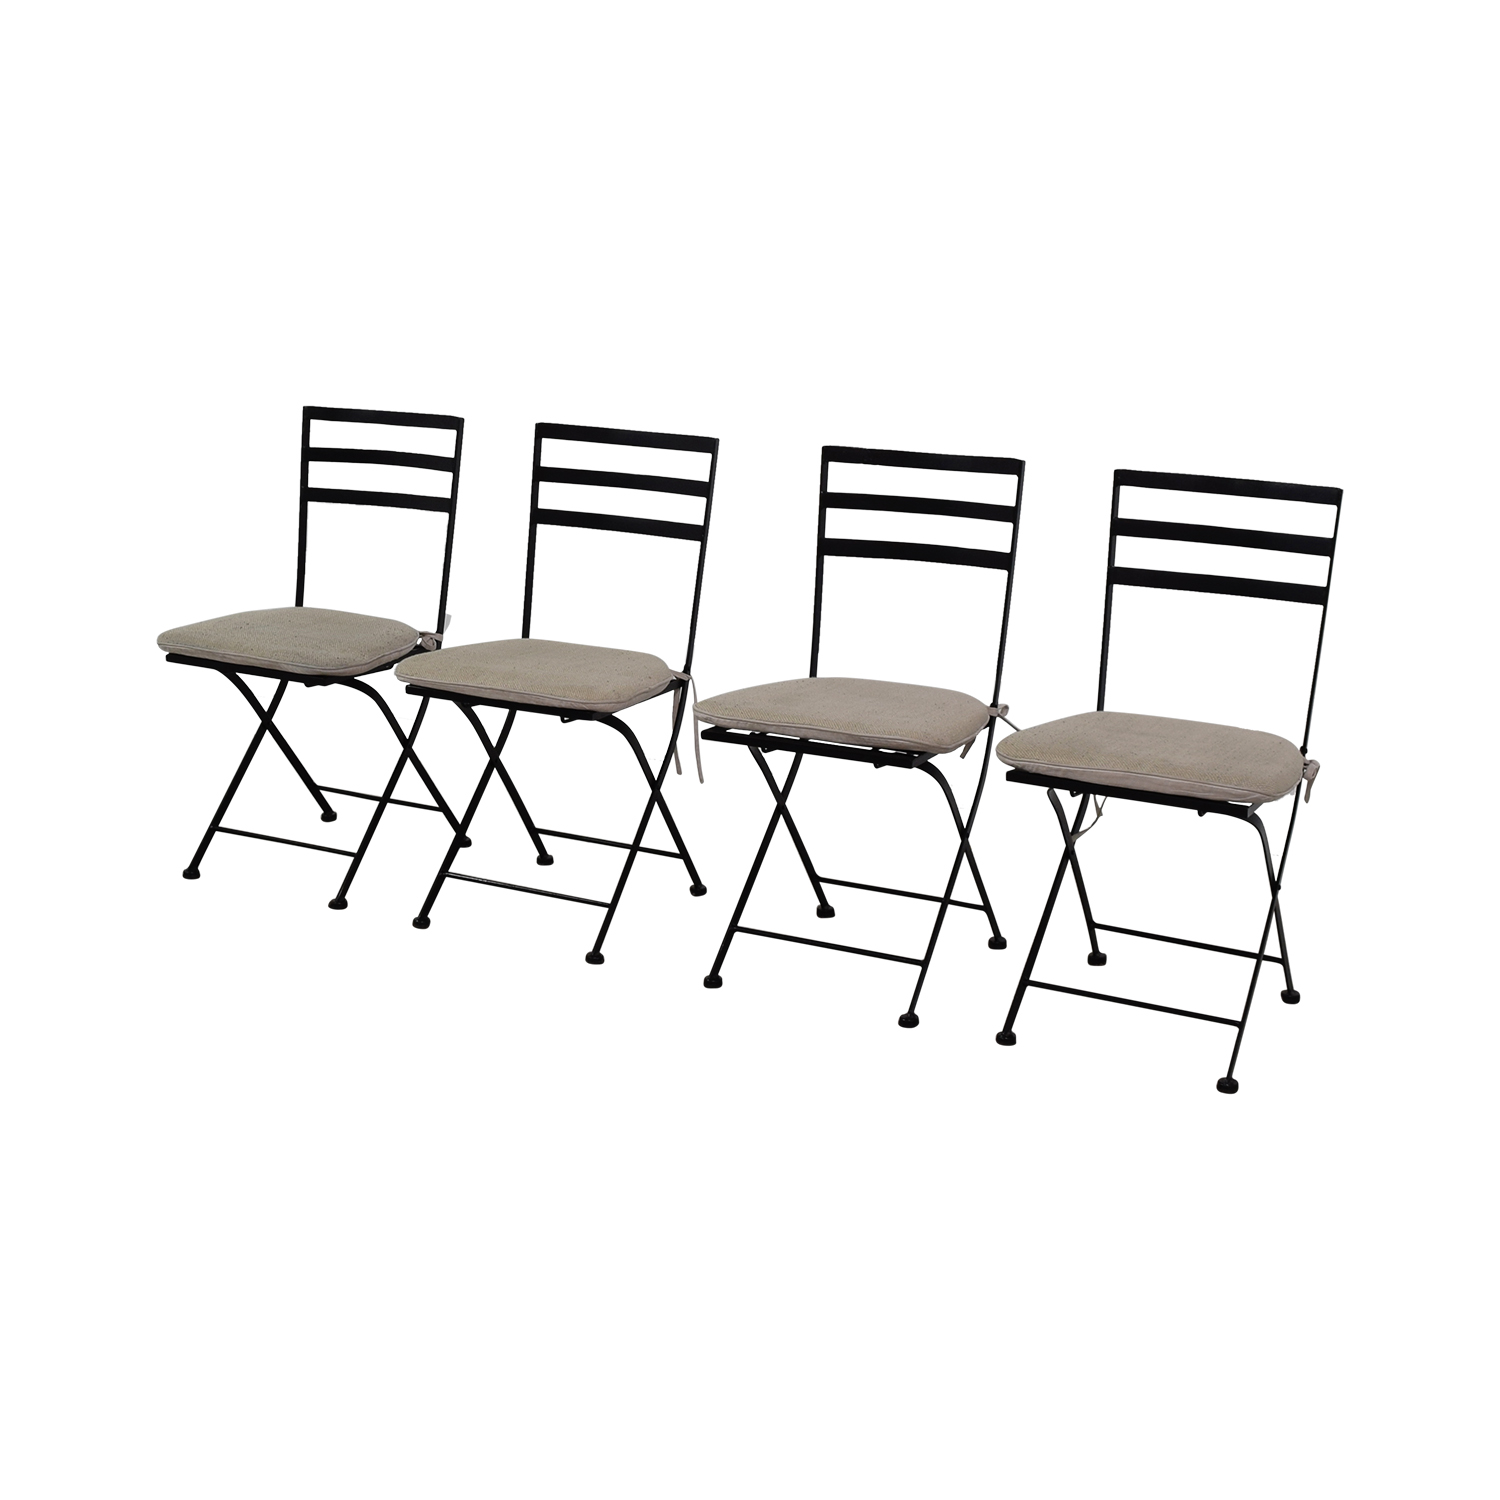 Groovy 56 Off 4D Concepts 4D Concept Black Heavy Duty Foldable Chairs With Beige Cushions Chairs Ncnpc Chair Design For Home Ncnpcorg